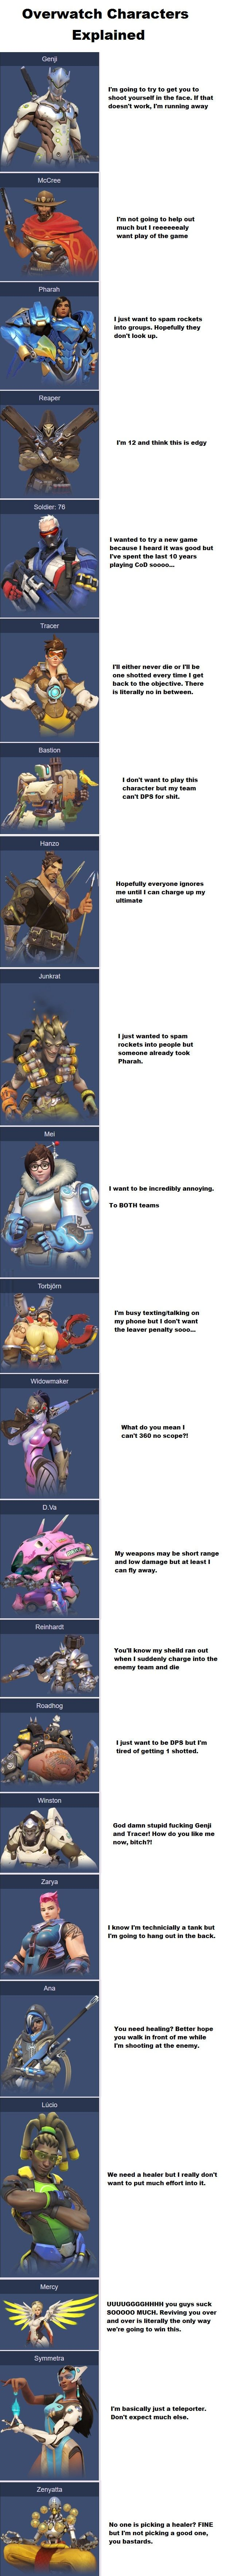 Overwatch characters explained